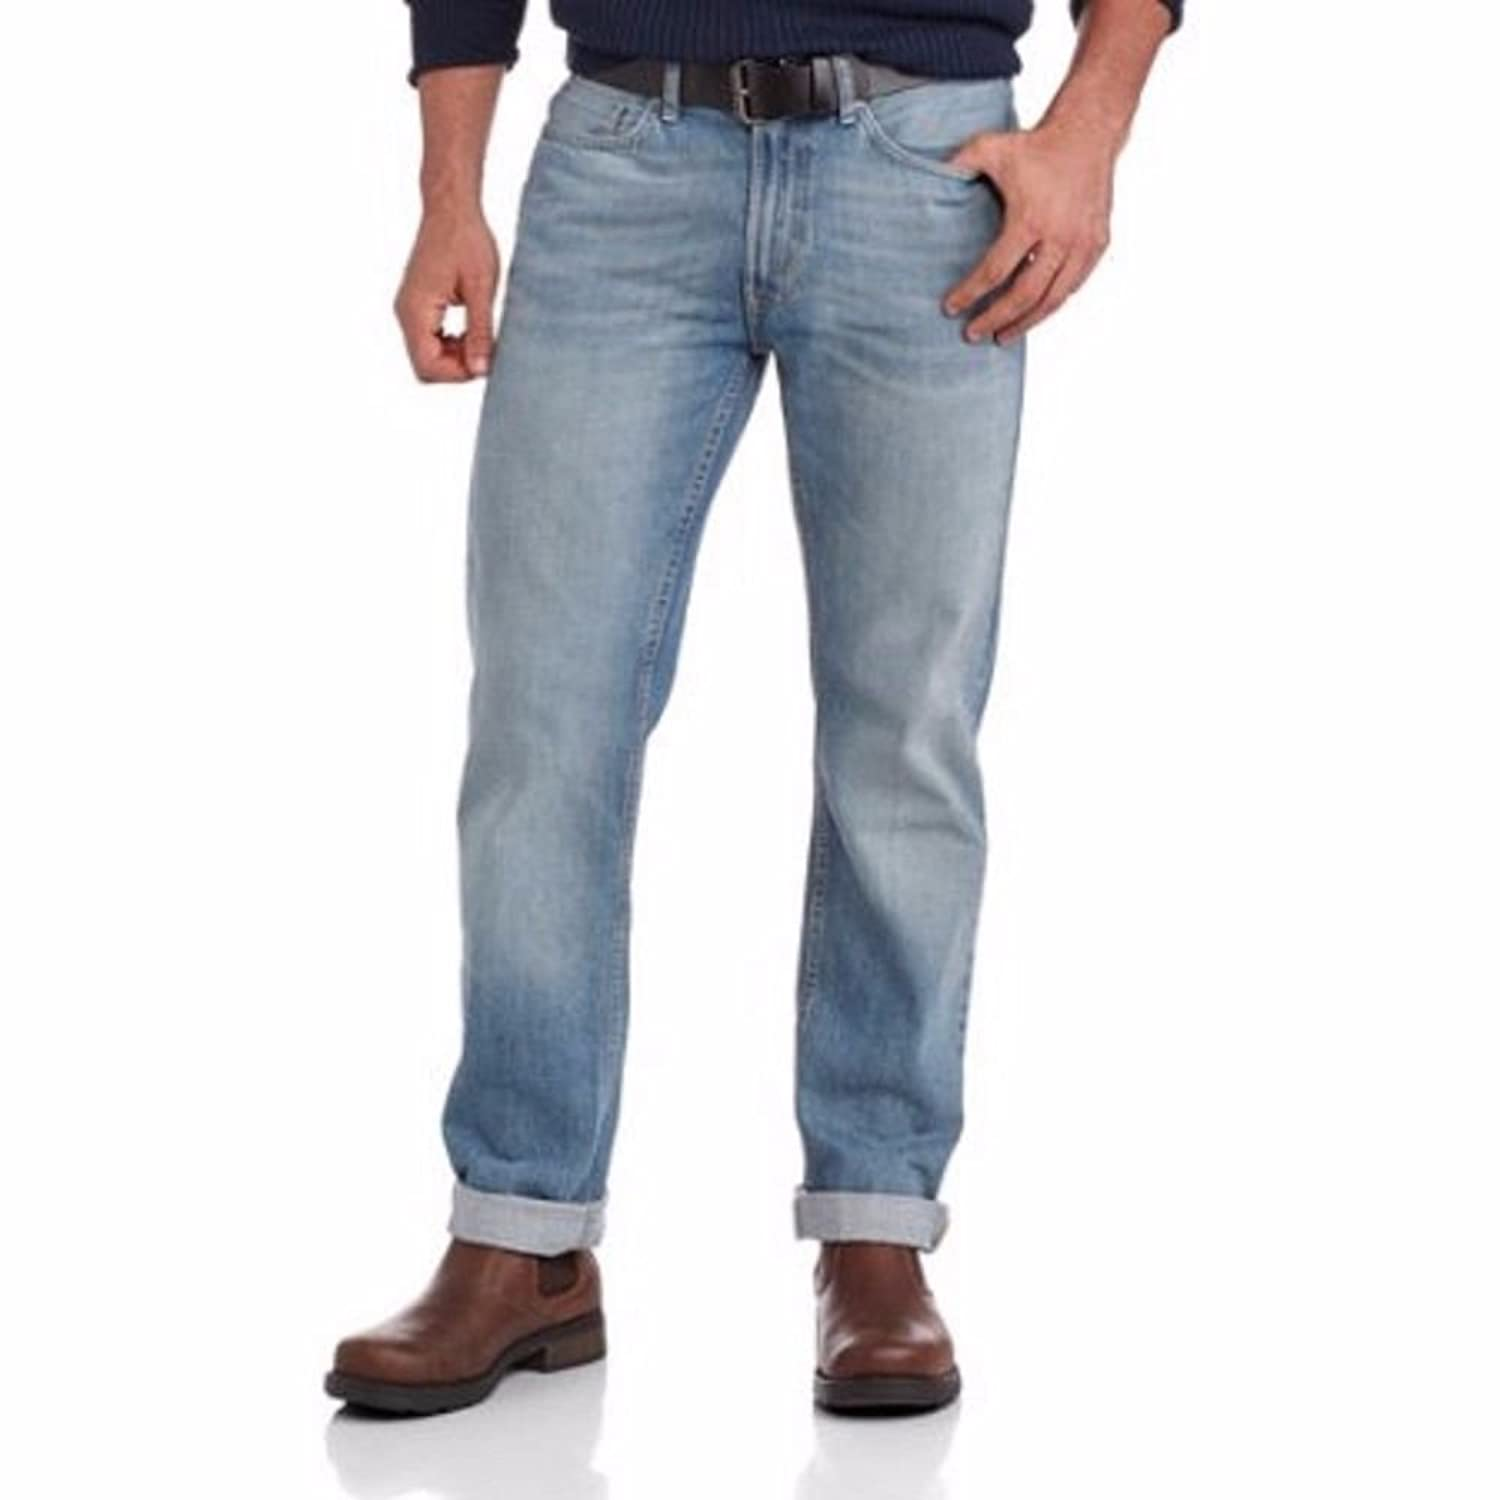 durable service George UK Men's Belted Light Wash Bootcut Jeans ...